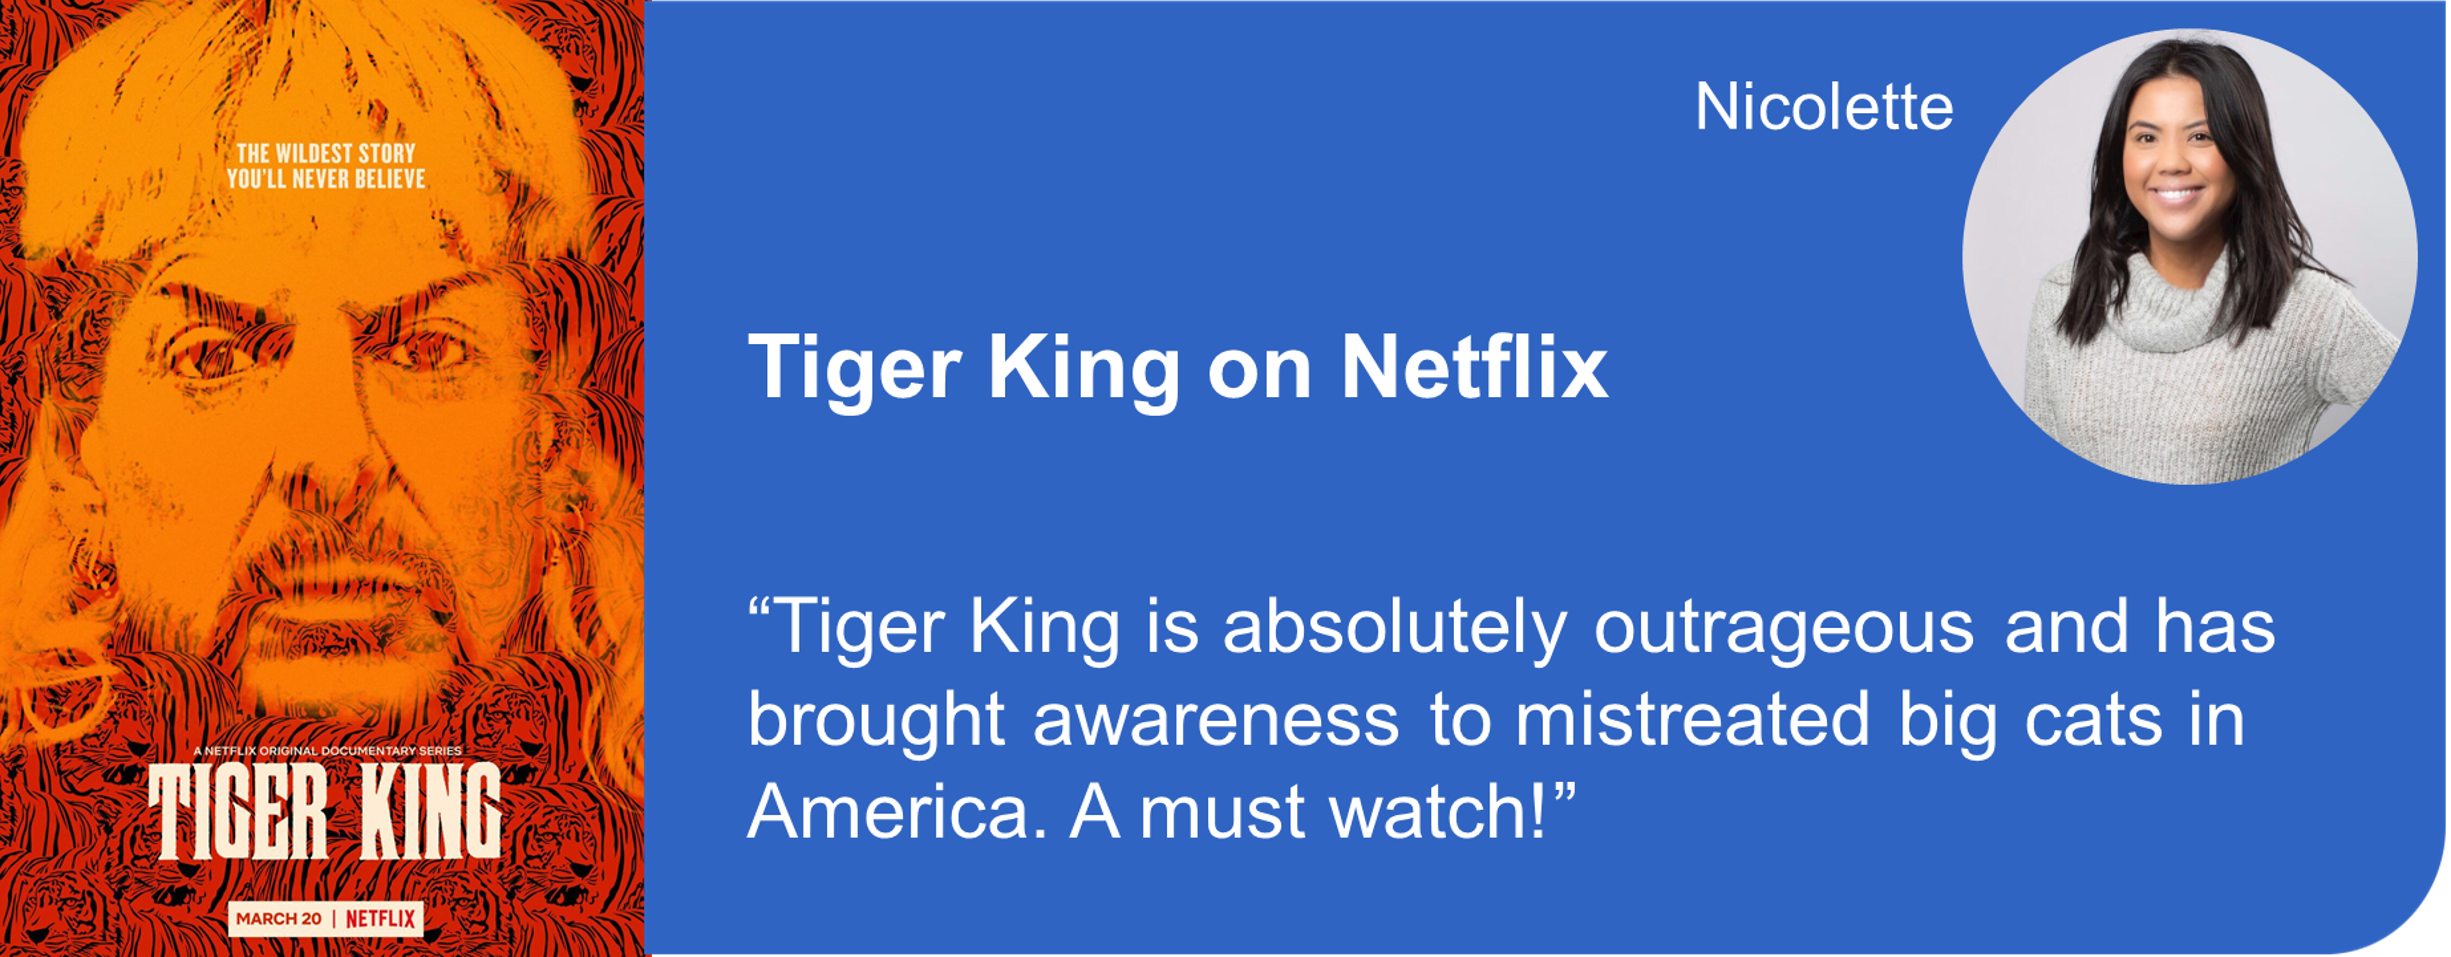 Creative Marketing Concepts Quarantine And Chill Binge-Worthy Tiger King Netflix